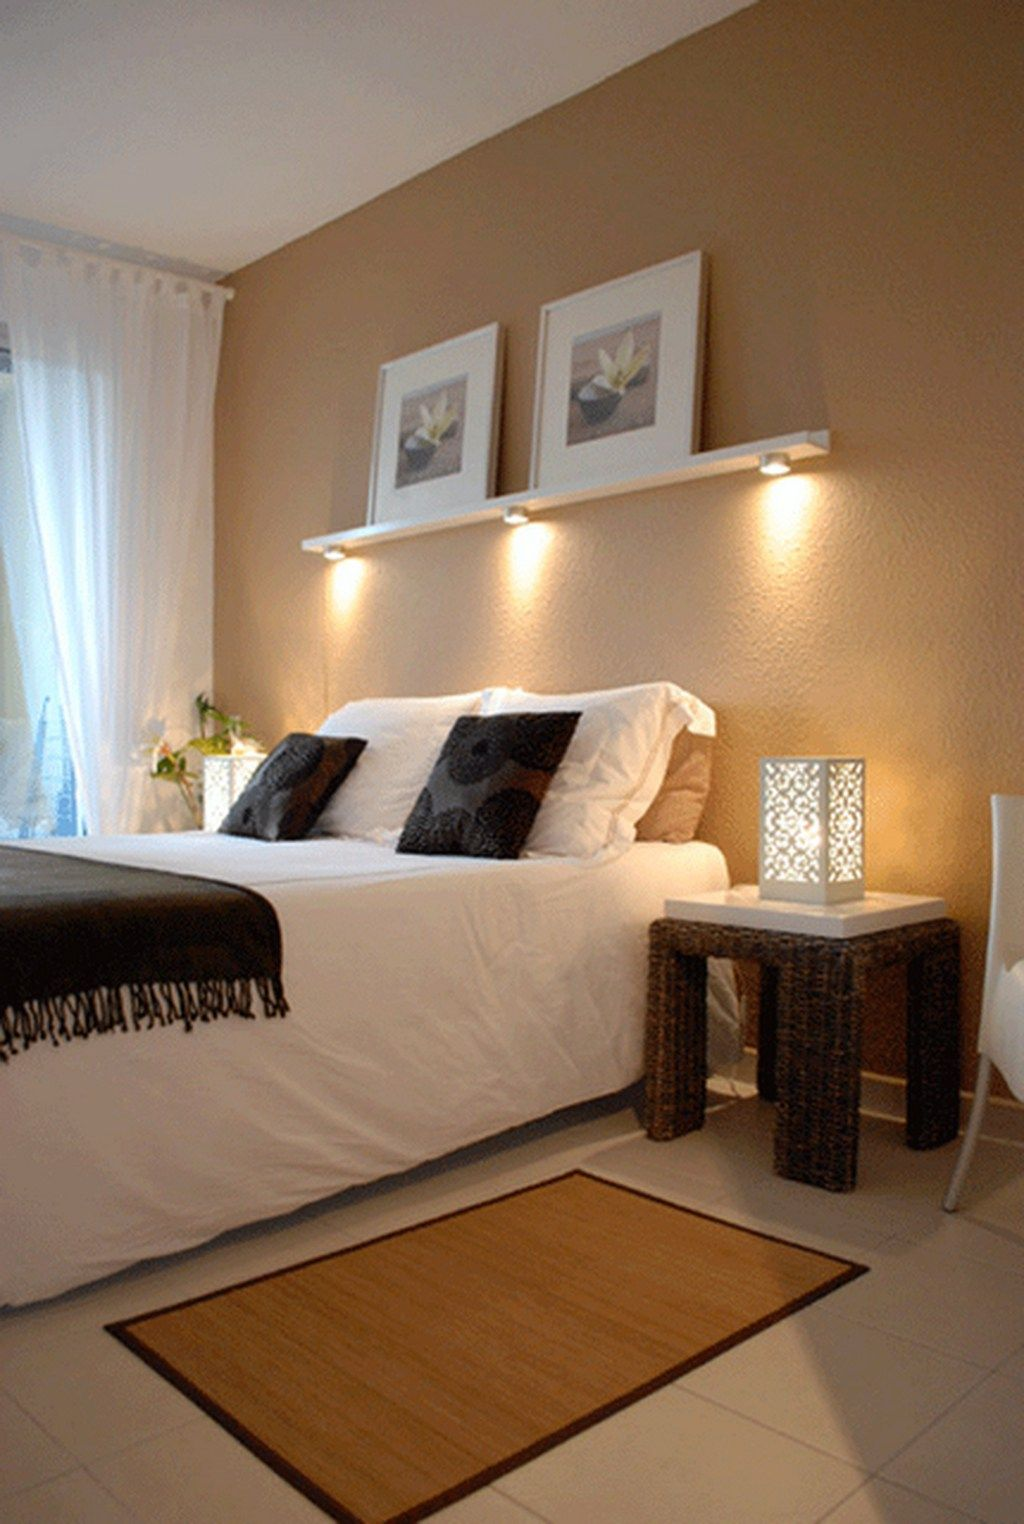 Best Creative Diy Headboard Ideas With Lights For Your